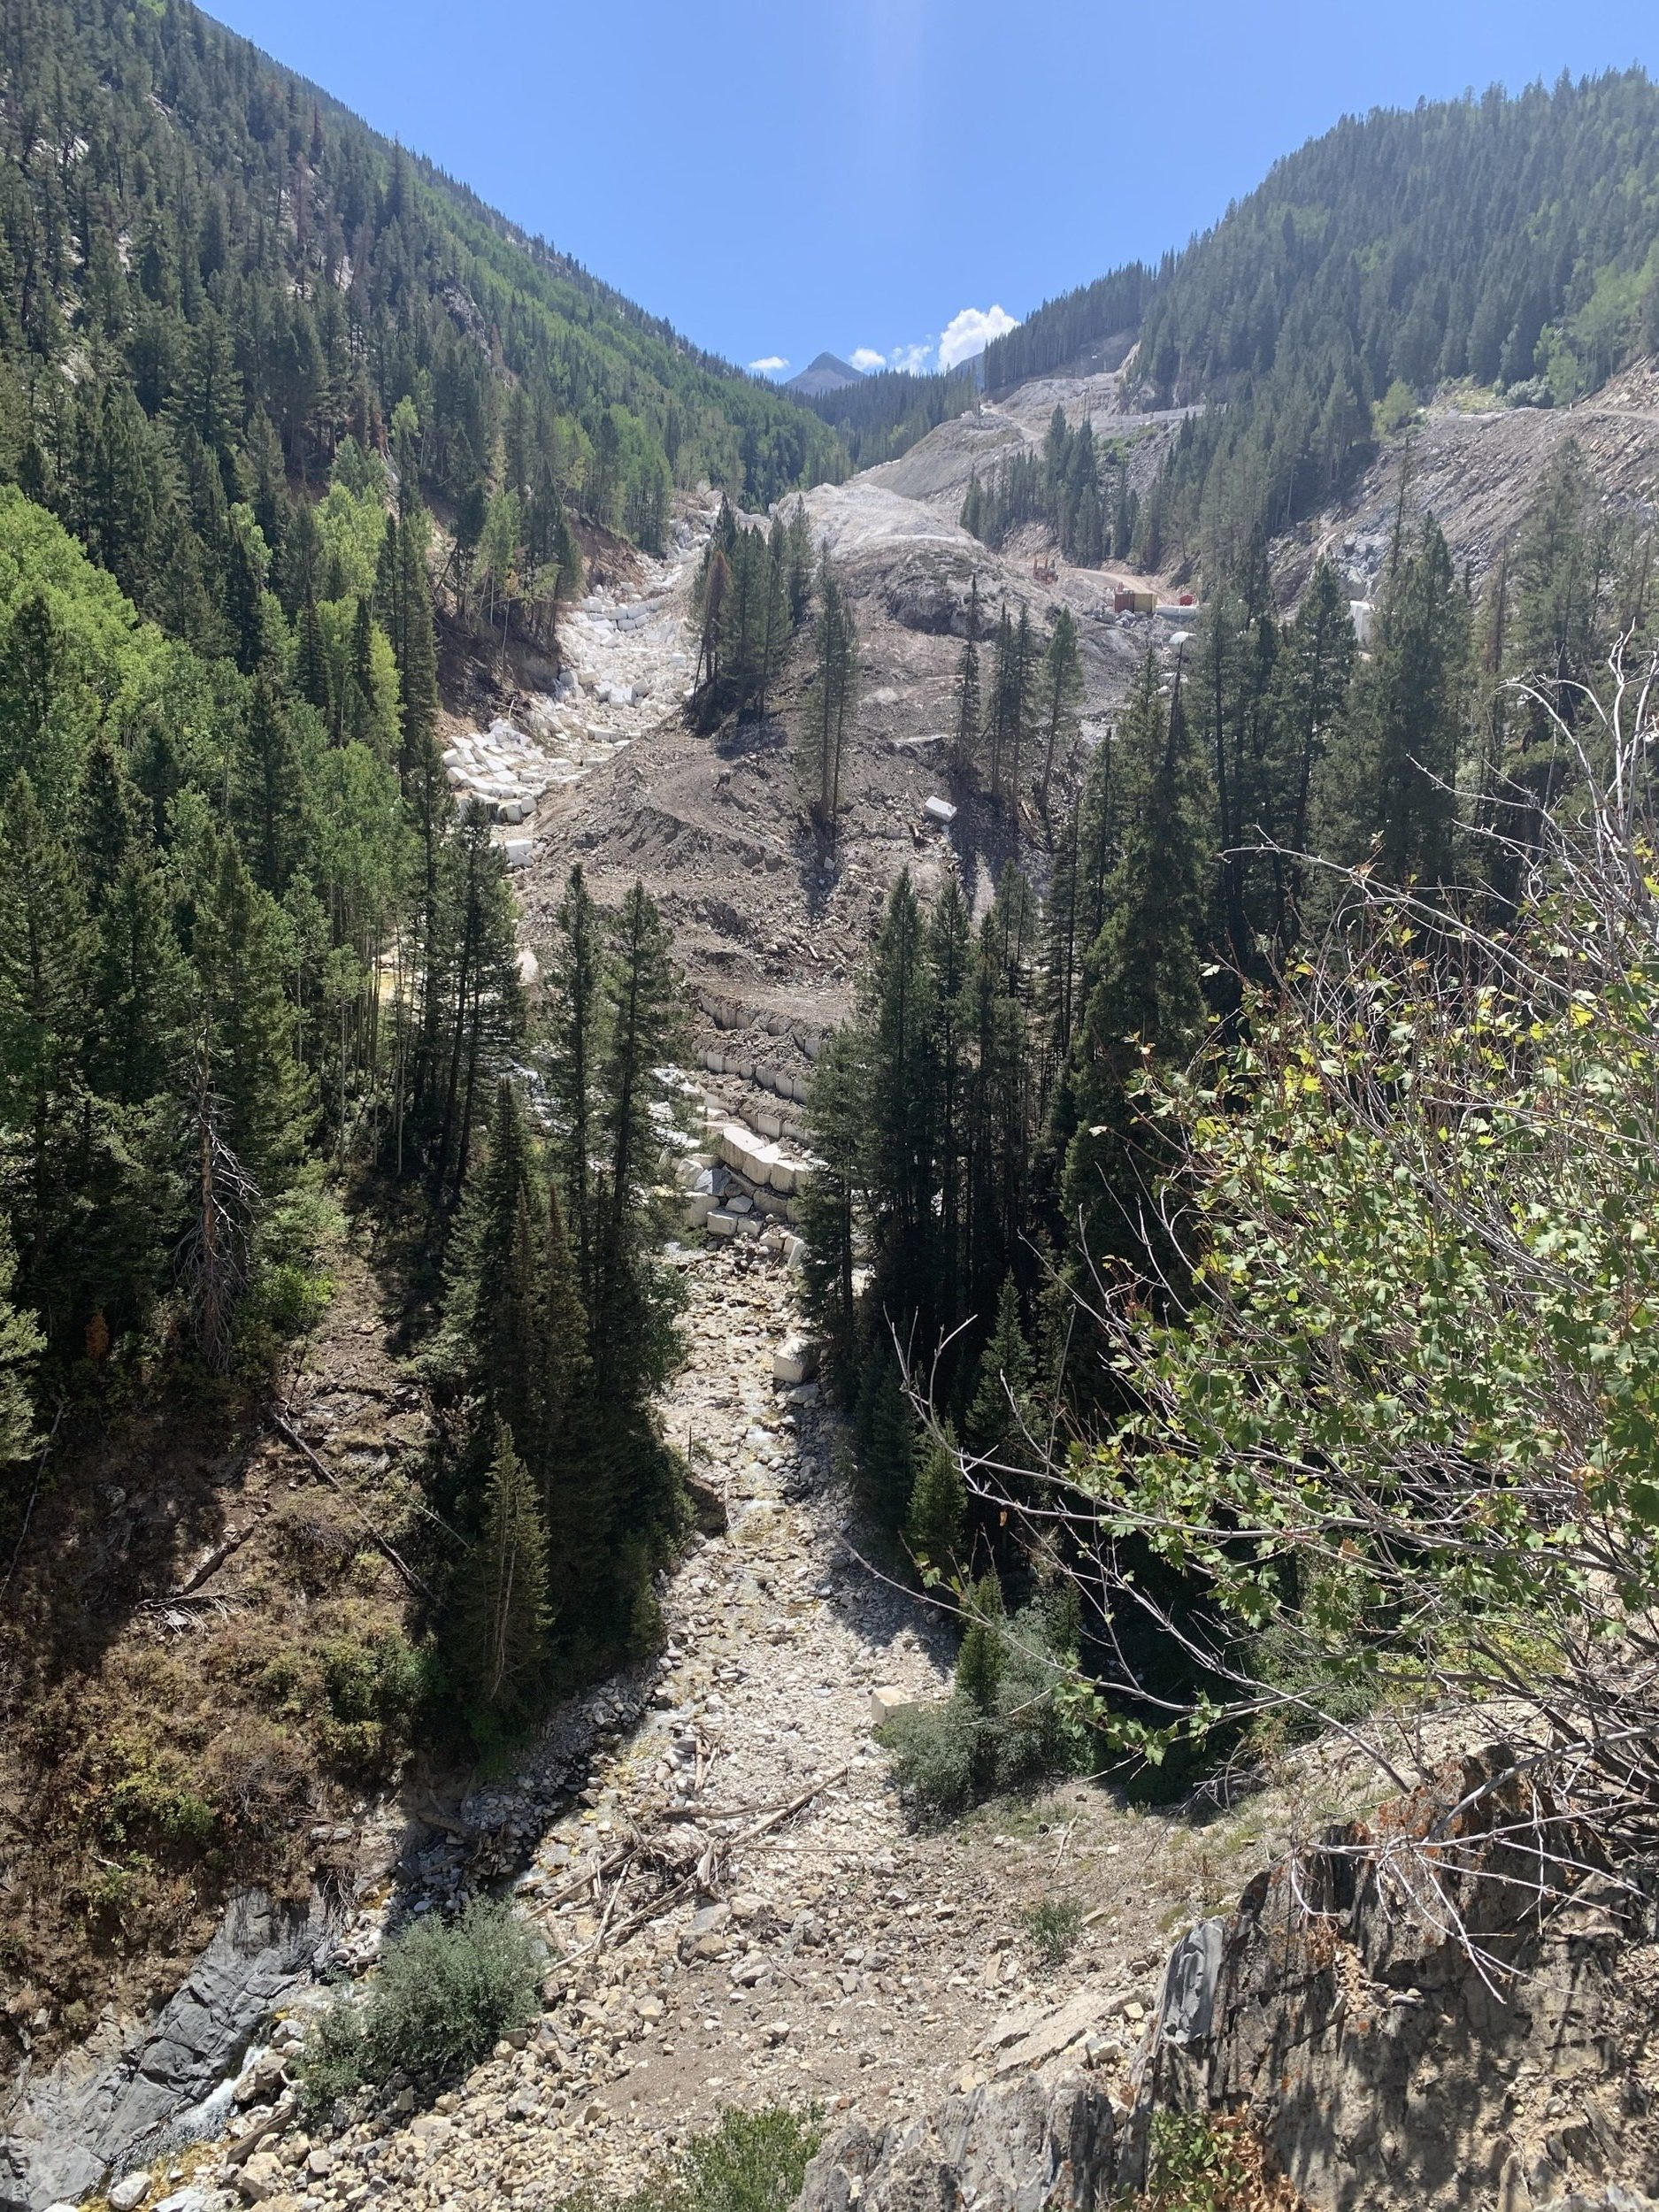 Marble Quarry seen fr om Yule Creek Road , August 2019. Photo by John Armstrong.